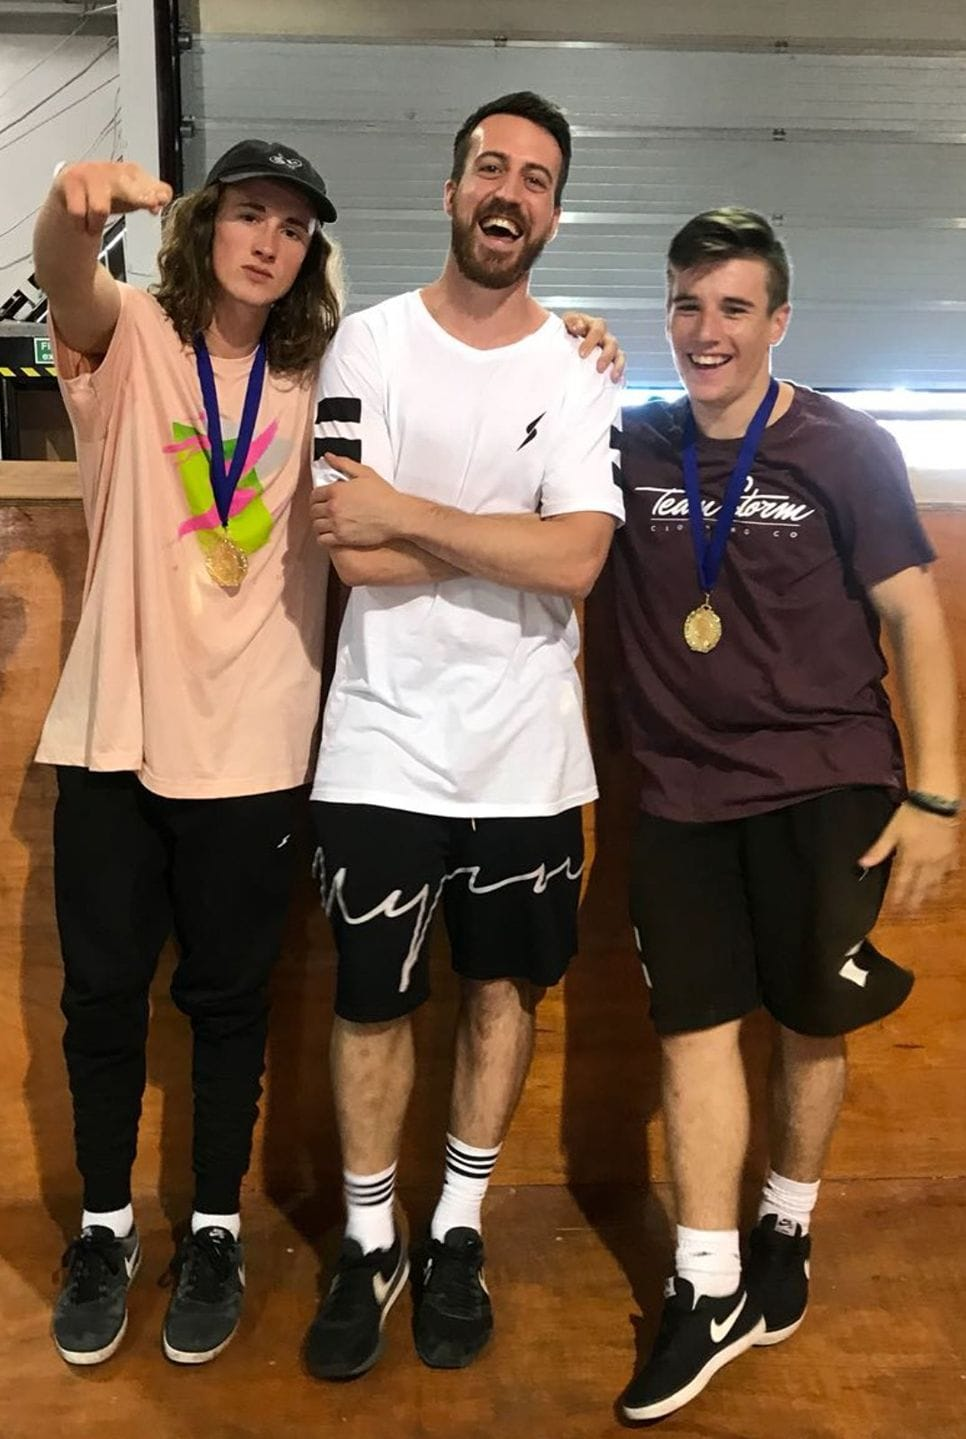 Project Underground IV - Project Underground gold medalists Joseph Henderson and Edward Scott with their coach Tom Taylor (Movement Power)